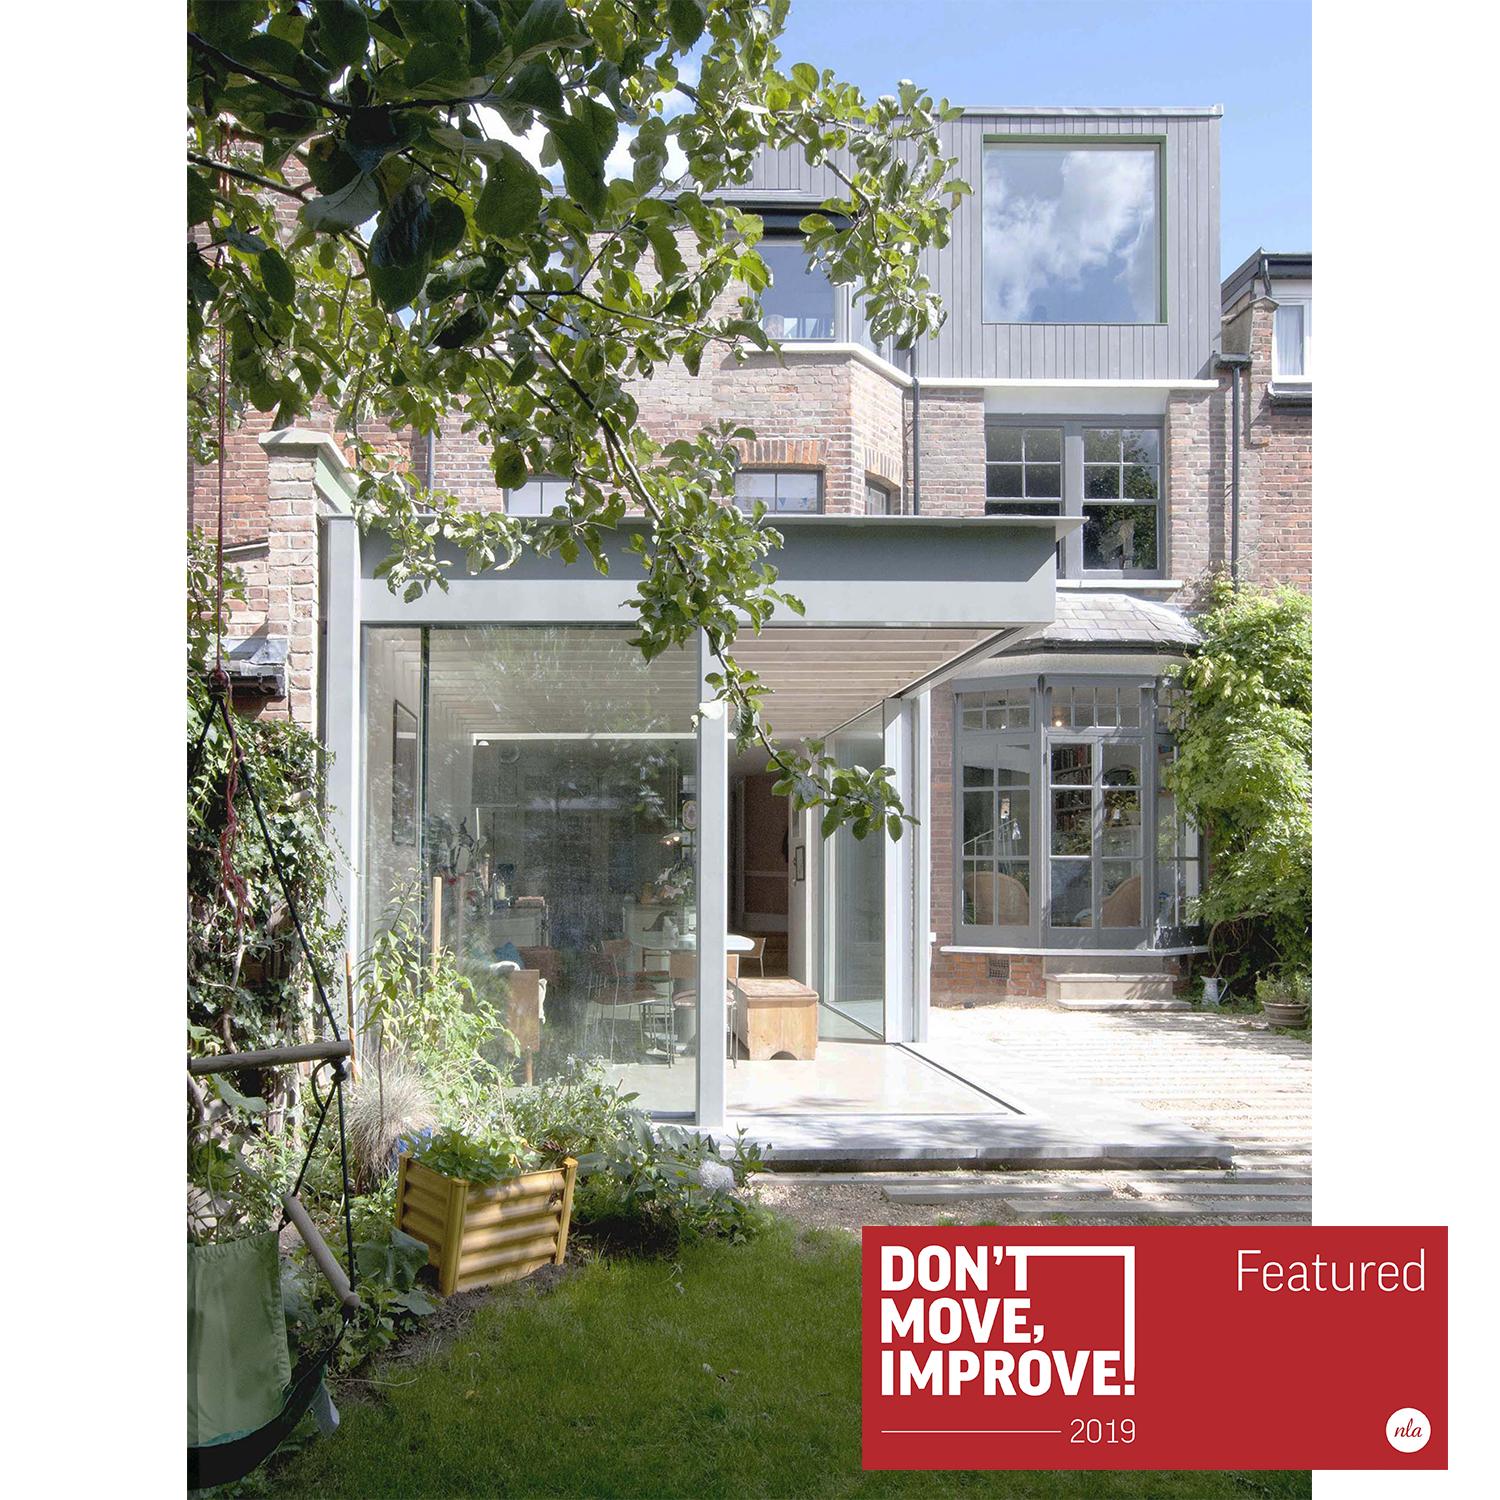 Firs Avenue Featured in the New London Architecture Dont Move Improve Awards 2019